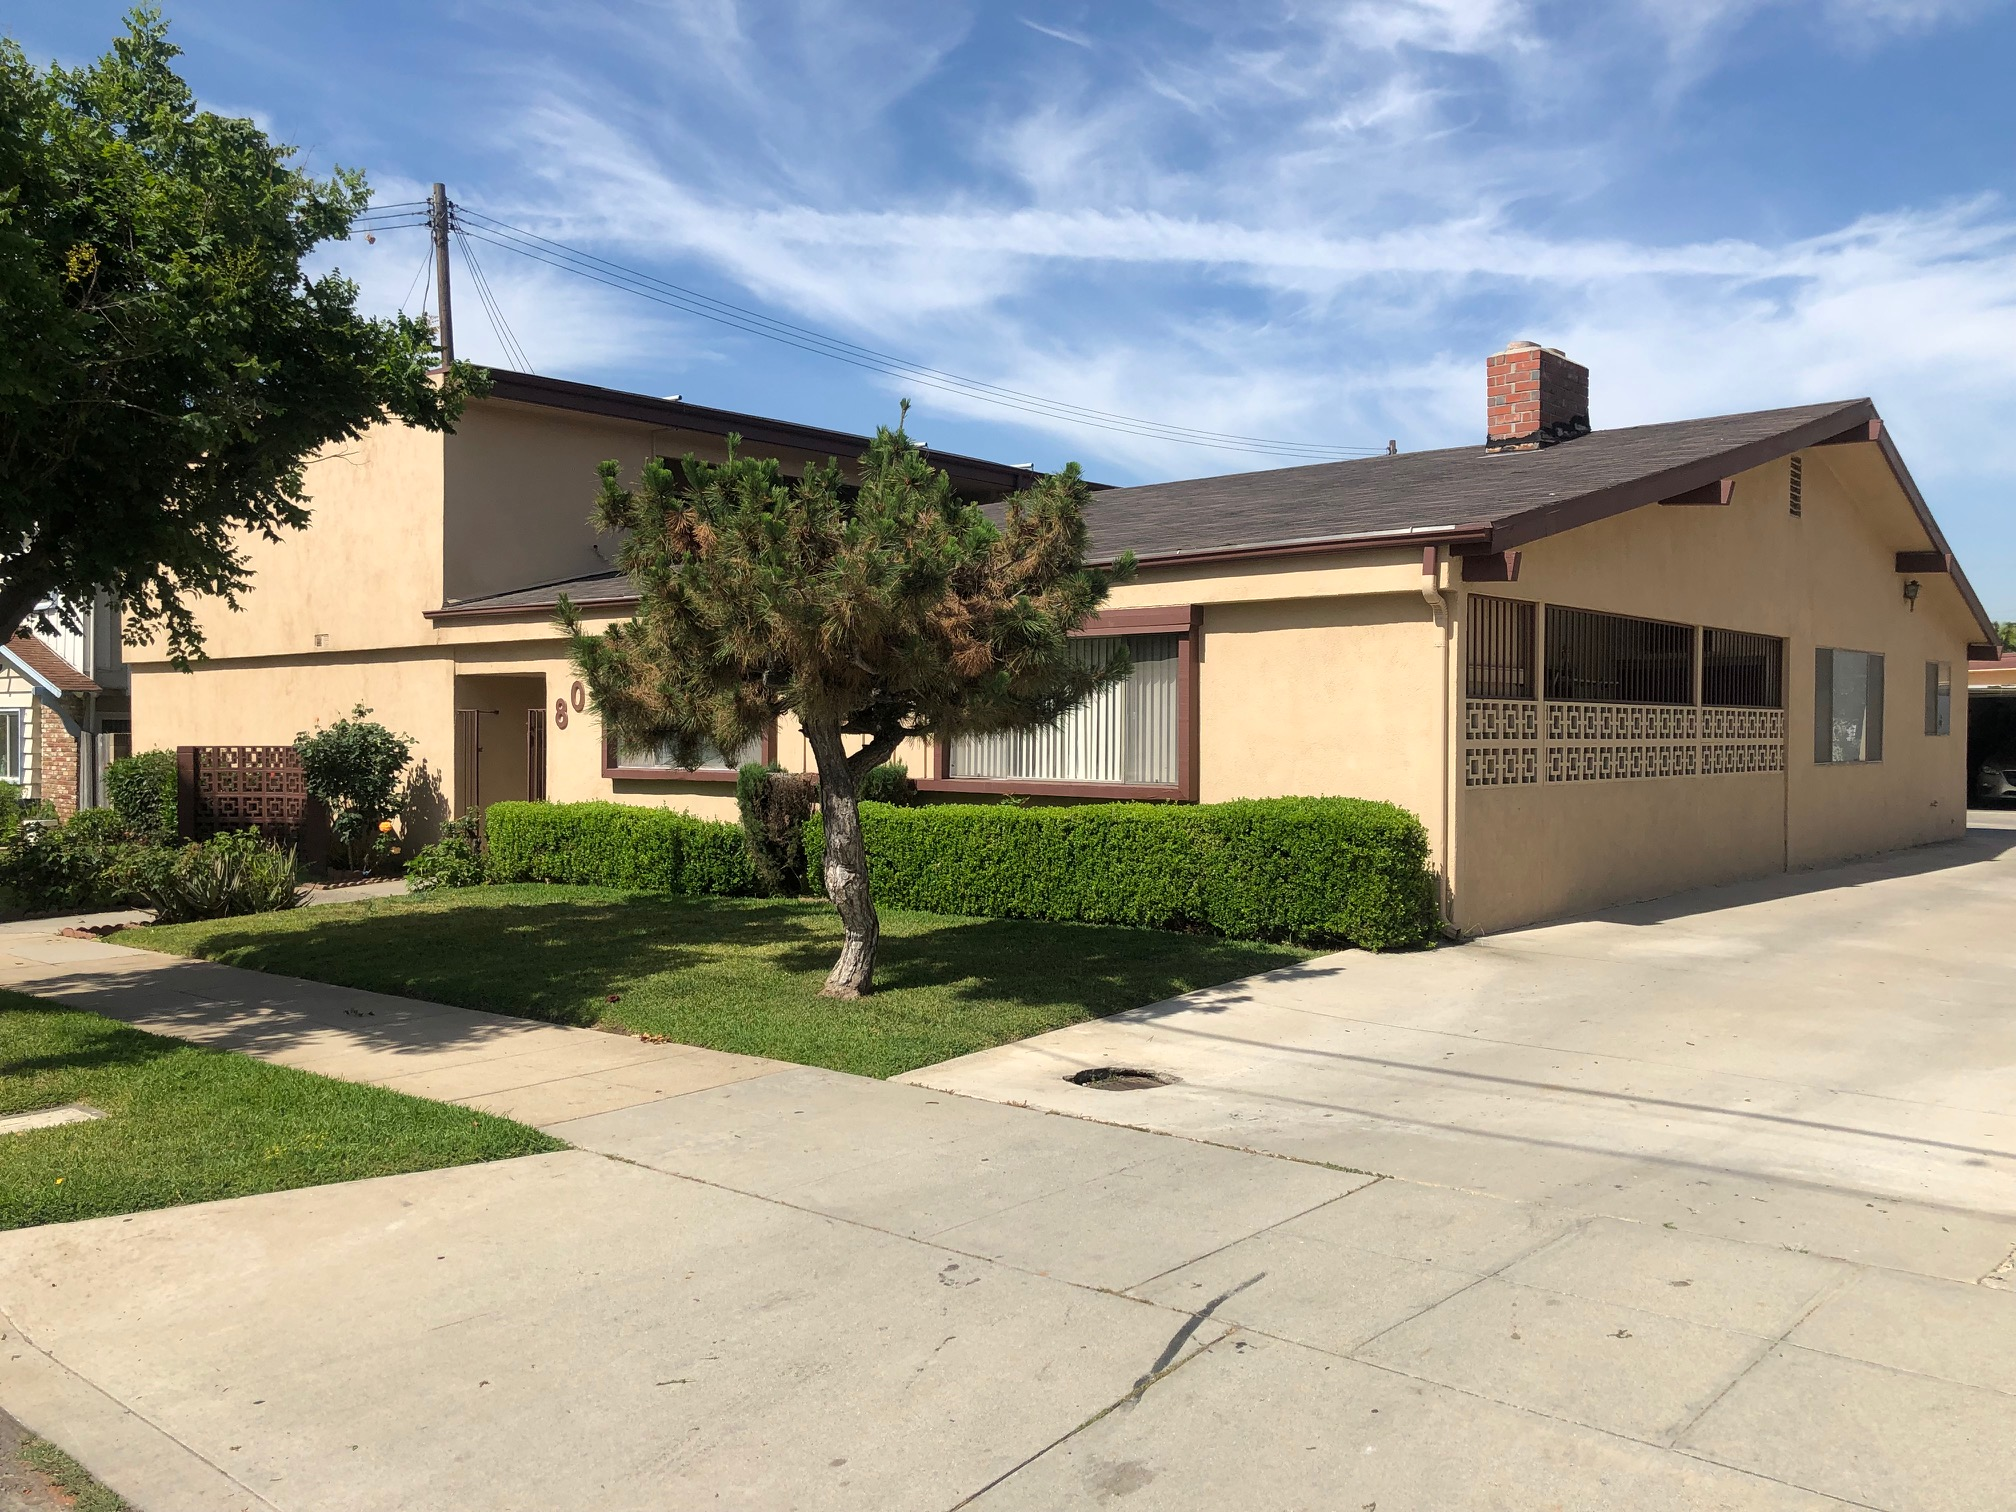 809 S Sierra Vista Ave | For SALE